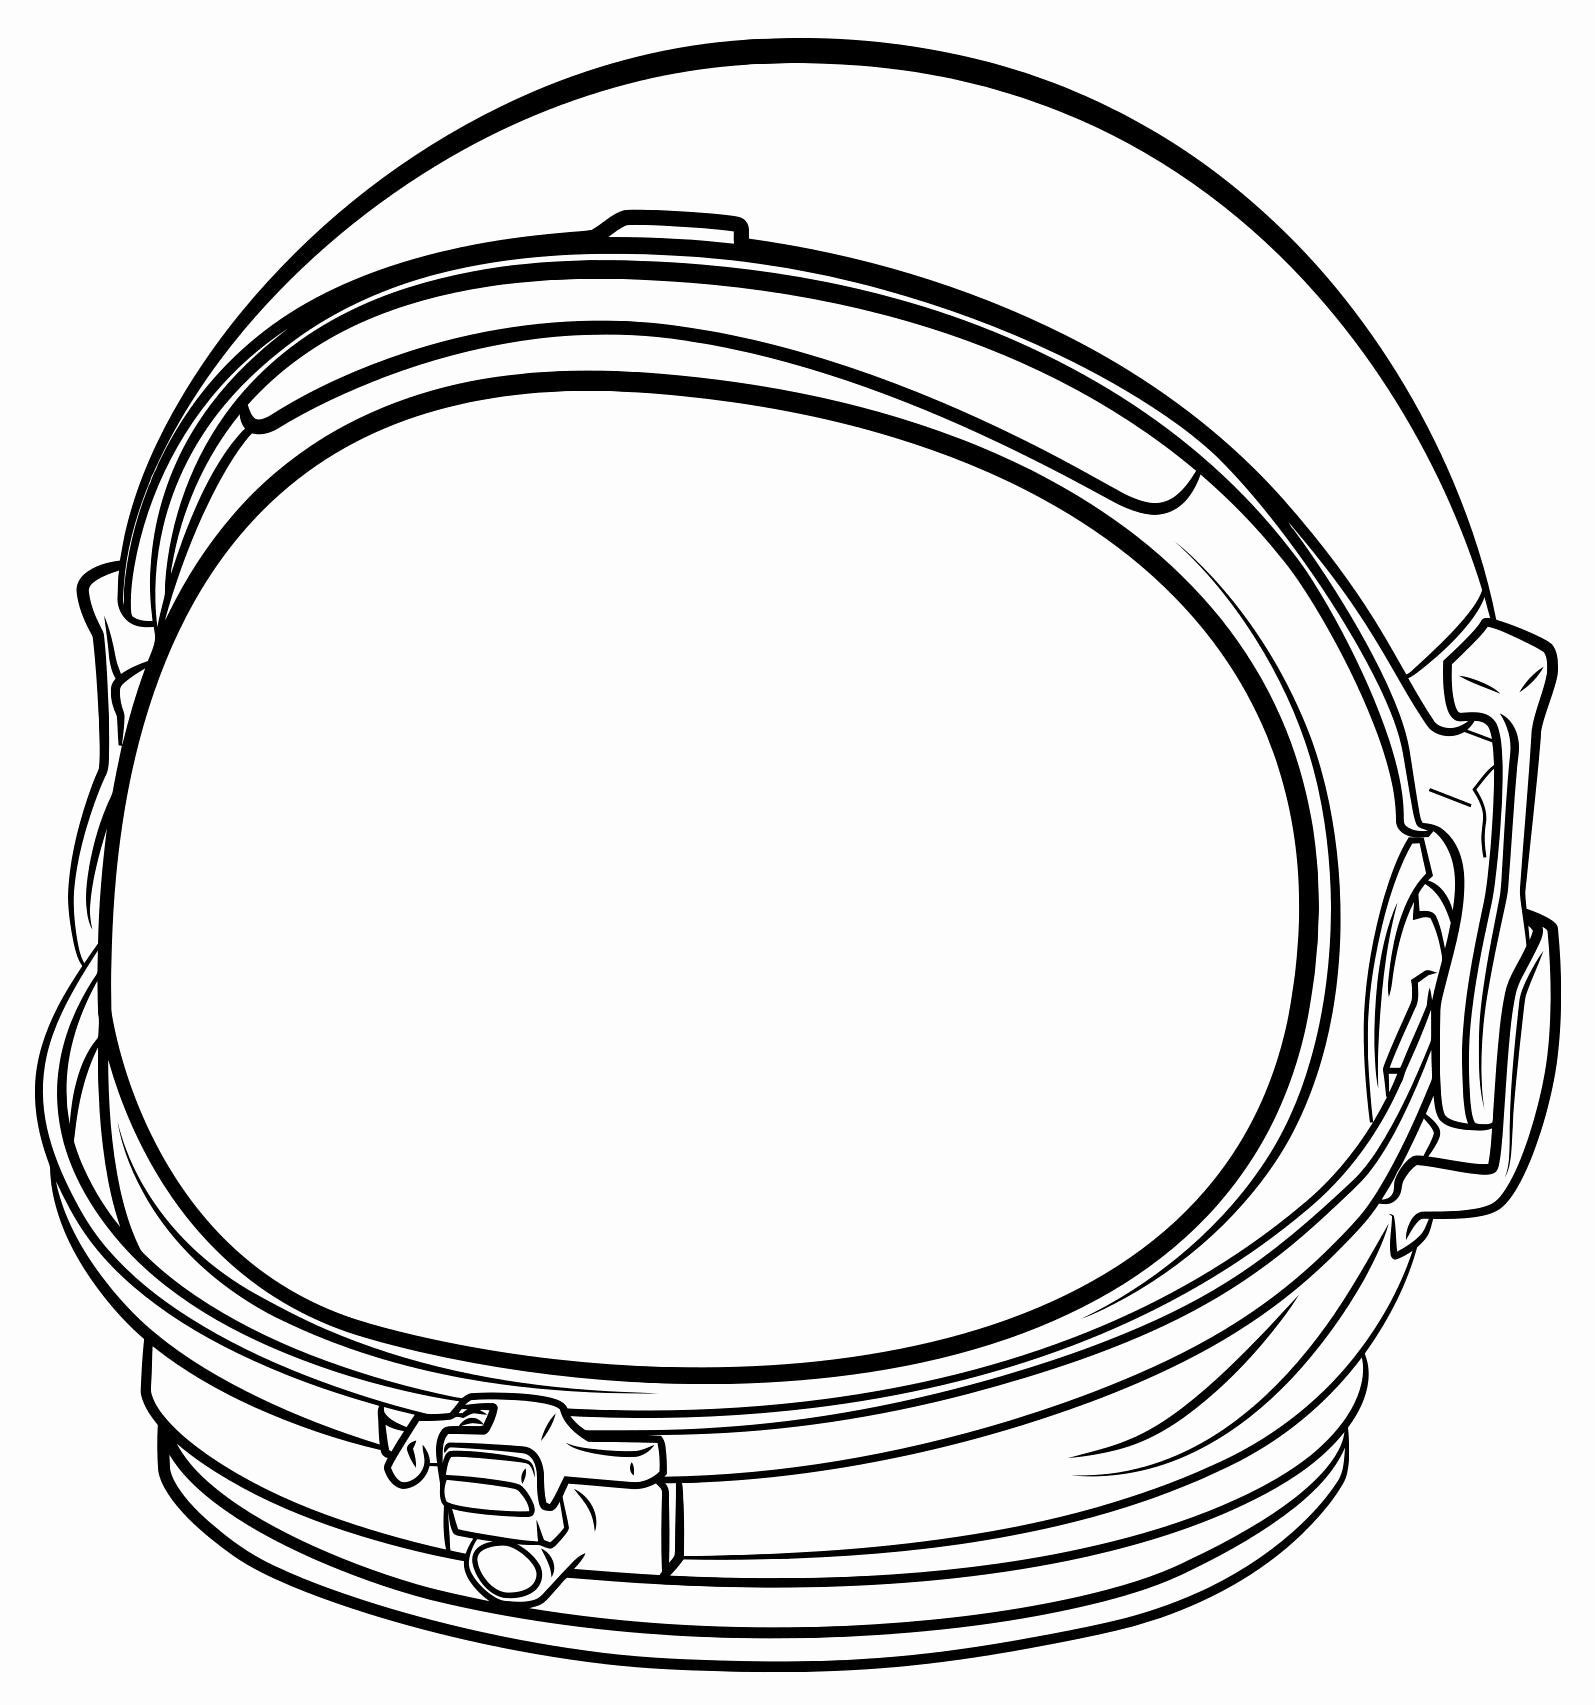 Space Coloring Pages Nasa in 2020 Space coloring pages